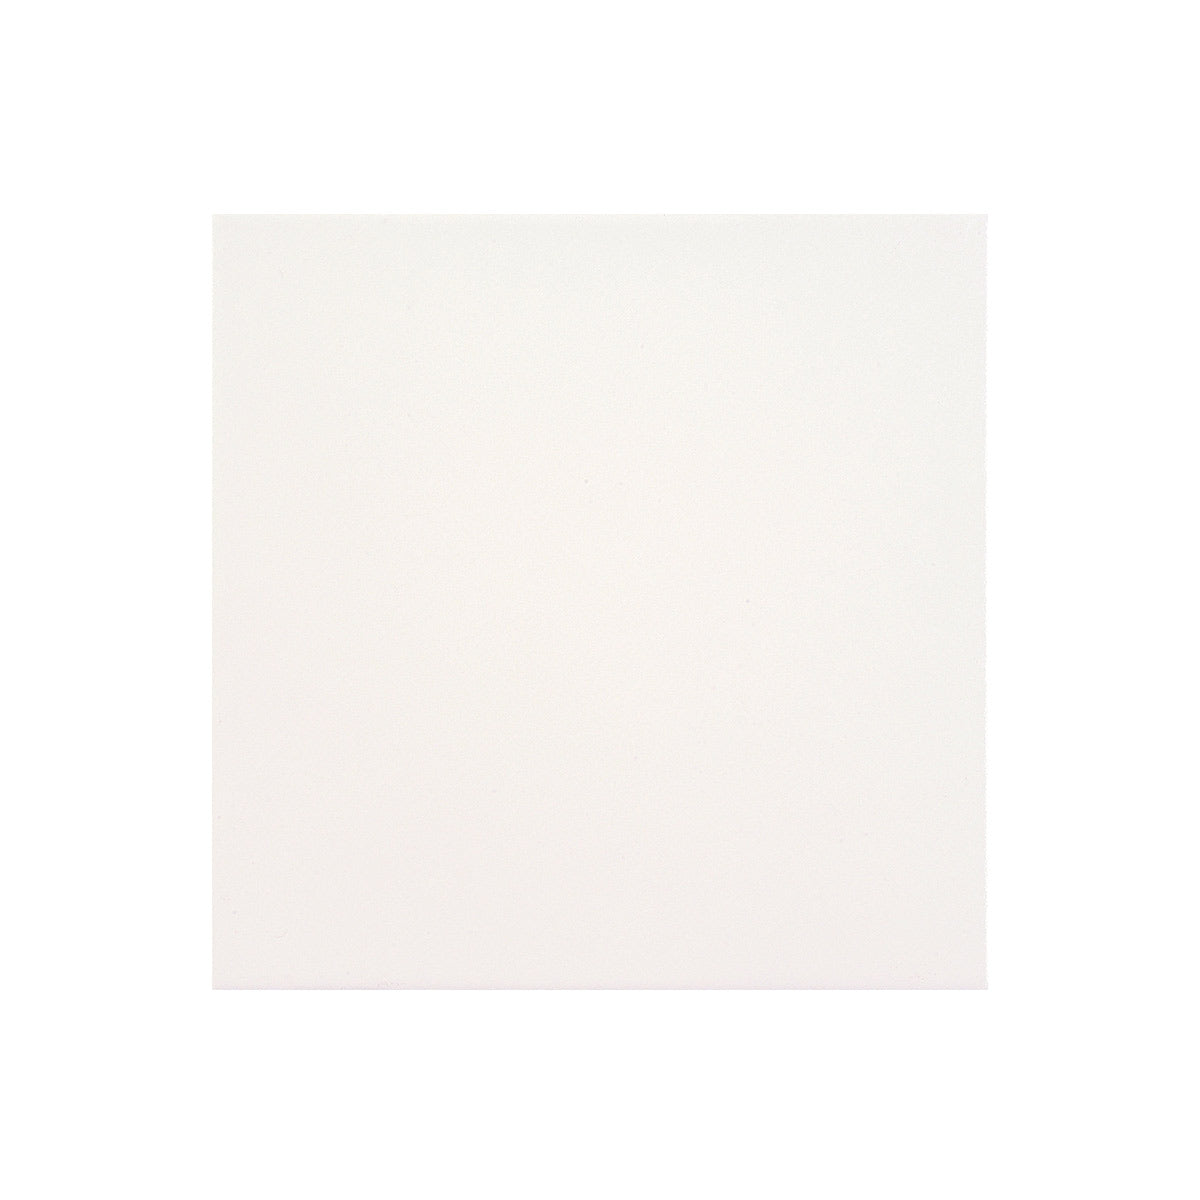 Piso Pared Natal Blanco 20.5X20.5 (Cj:1.51 M2) 201093001